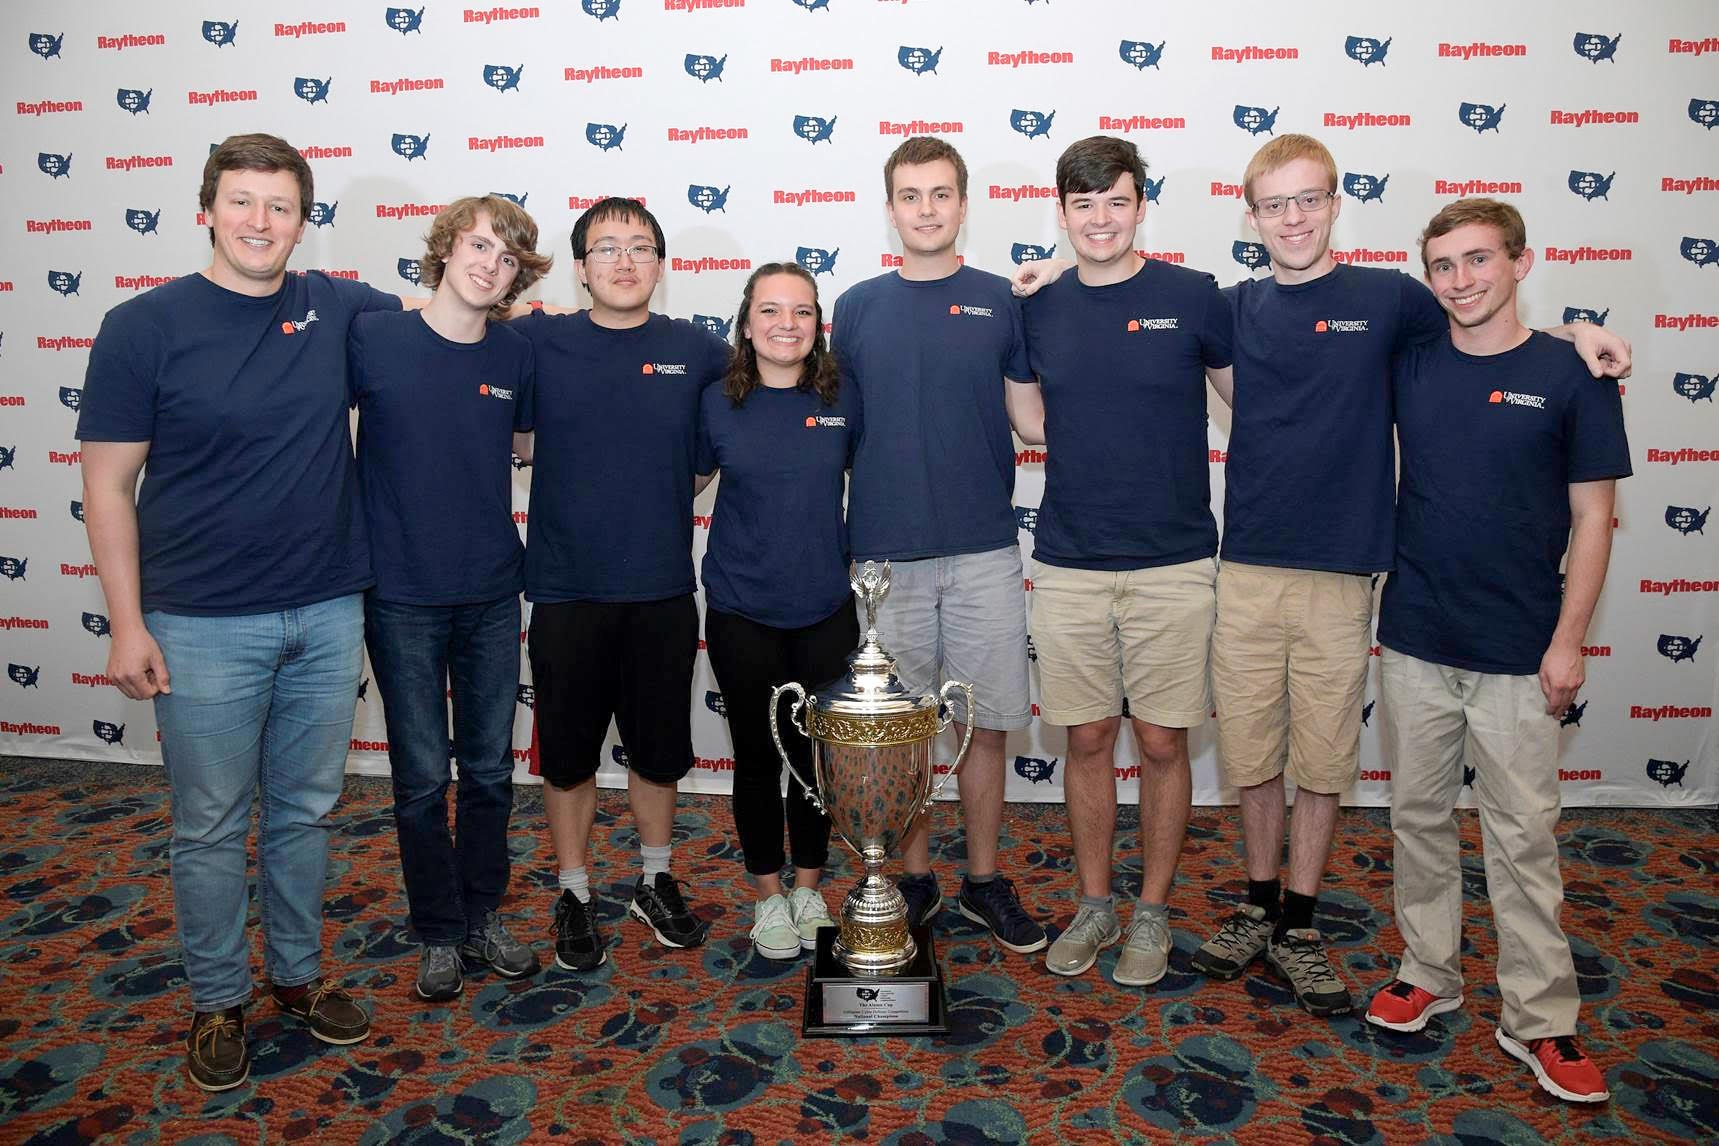 The UVA cyber defense team's adviser said Kenny, center, ranks among the top computer science students in the country.